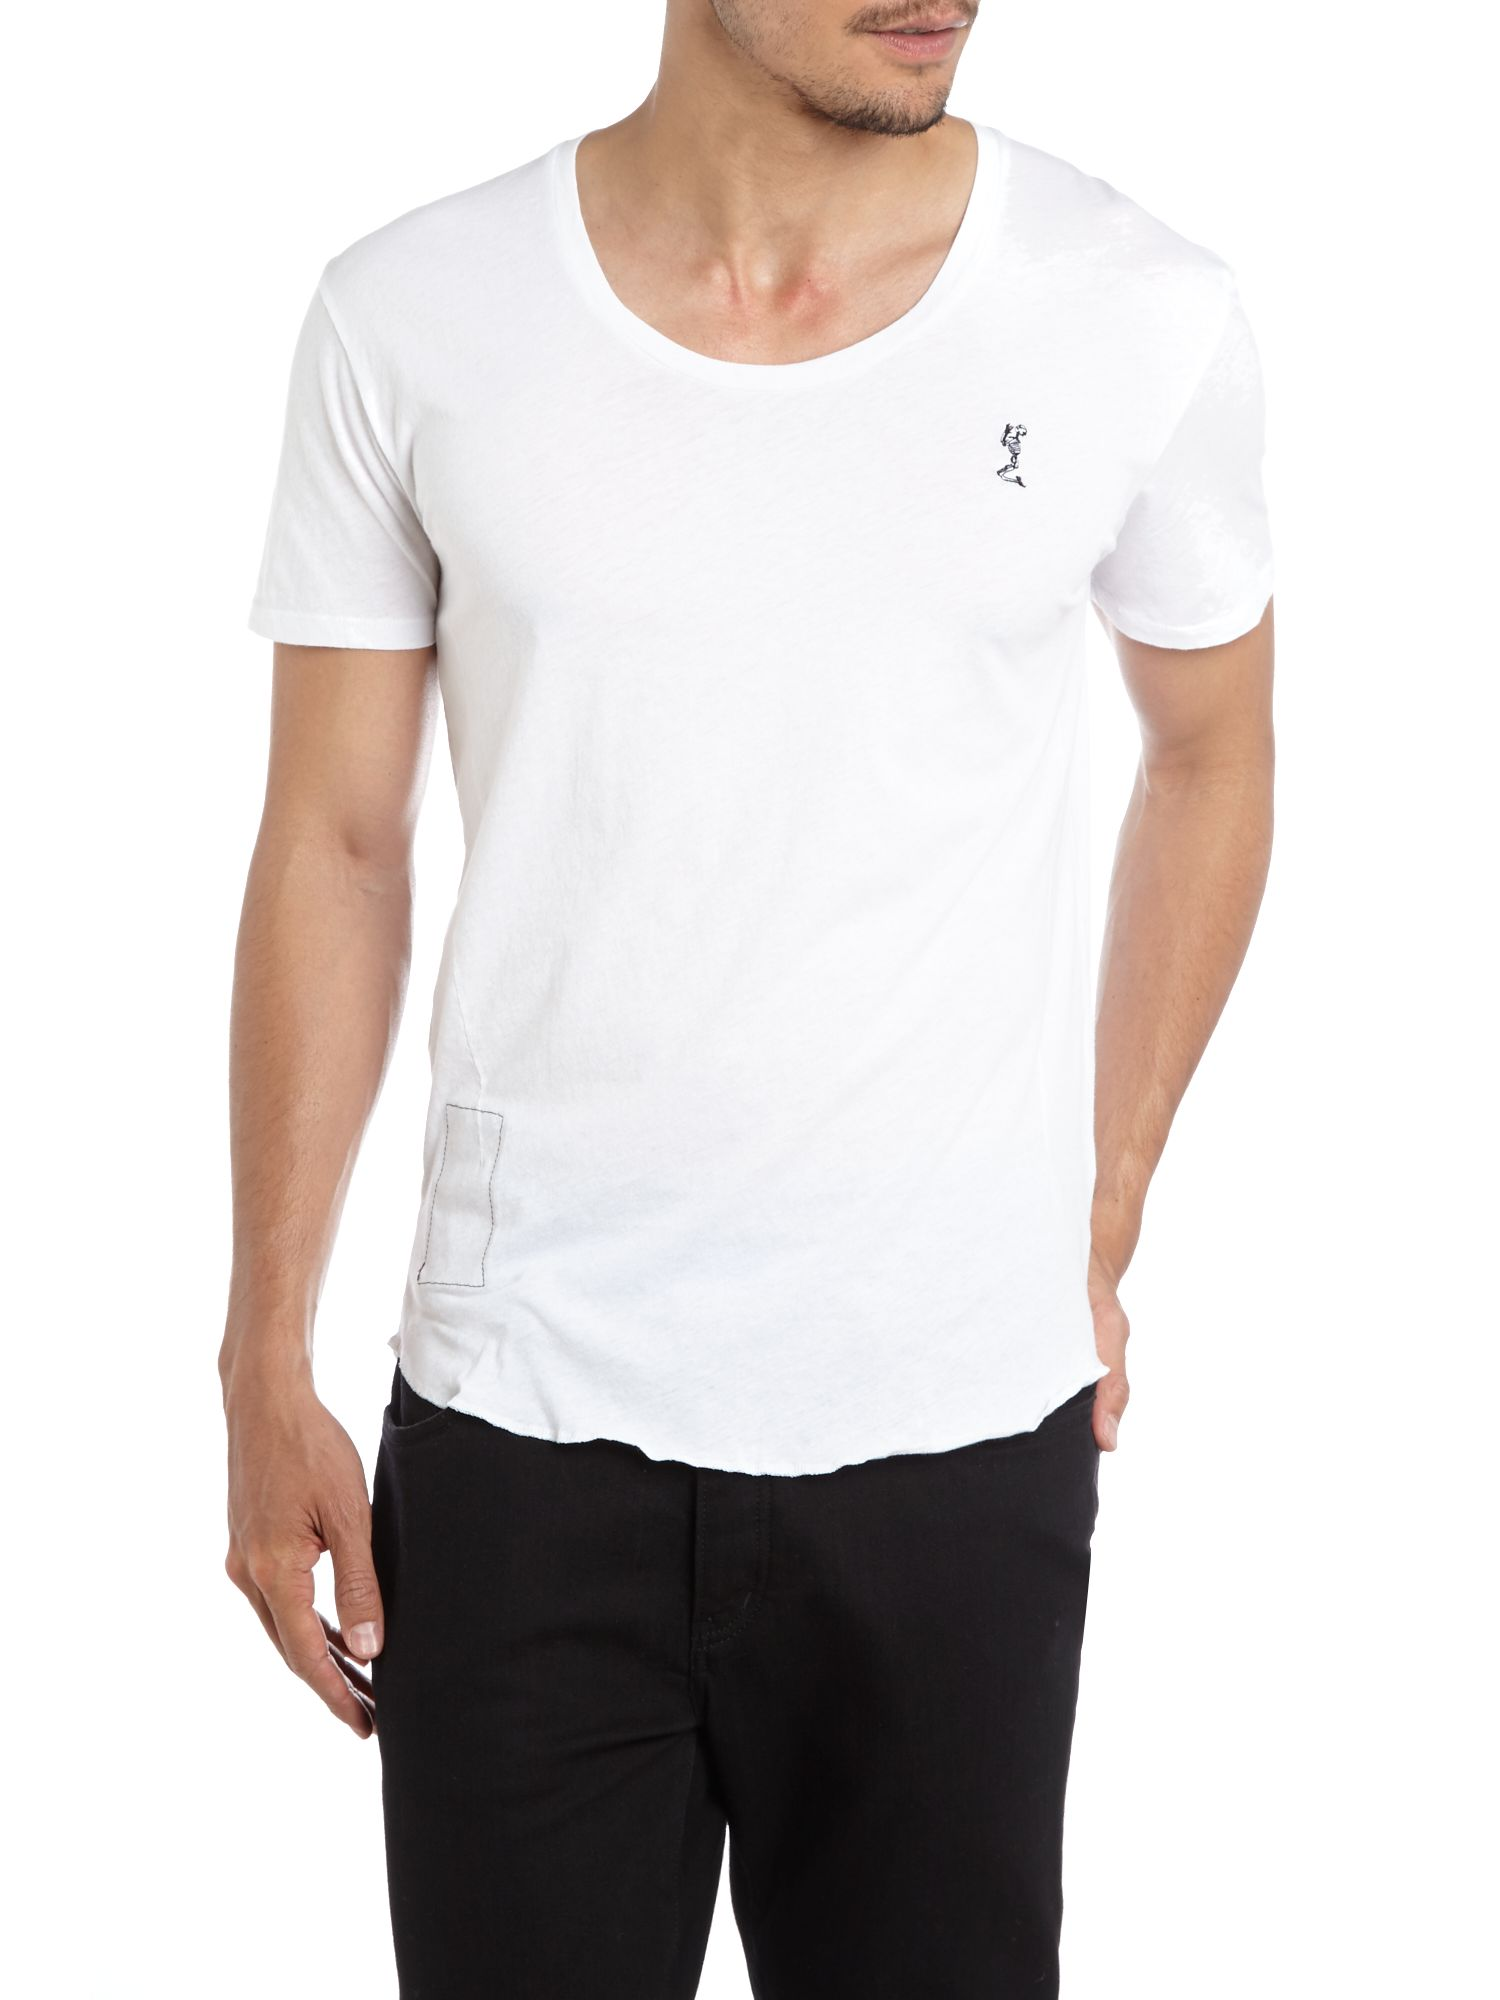 Scoop neck logo t shirt